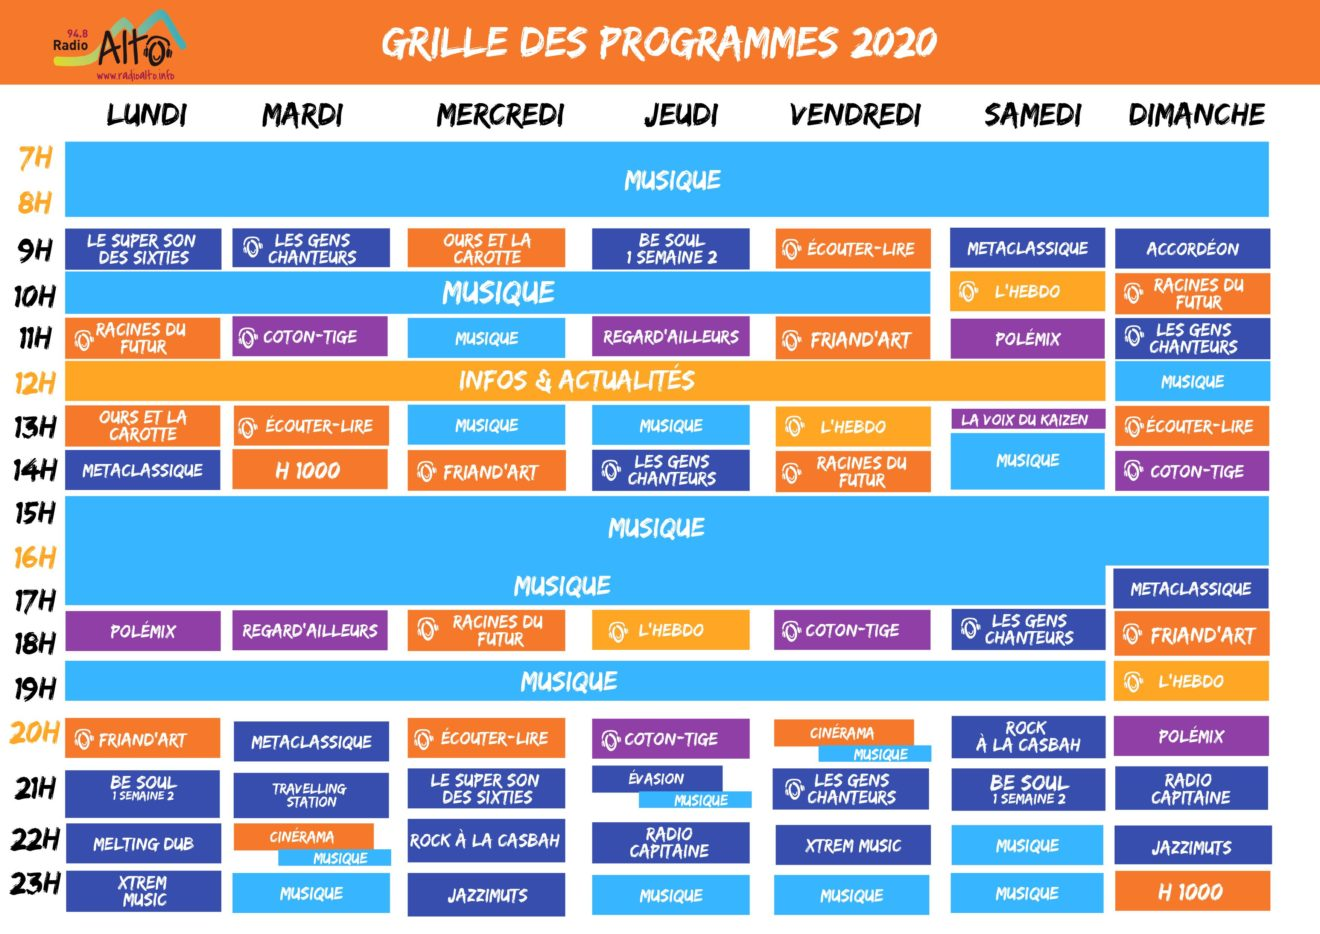 grille programme 2020 p1